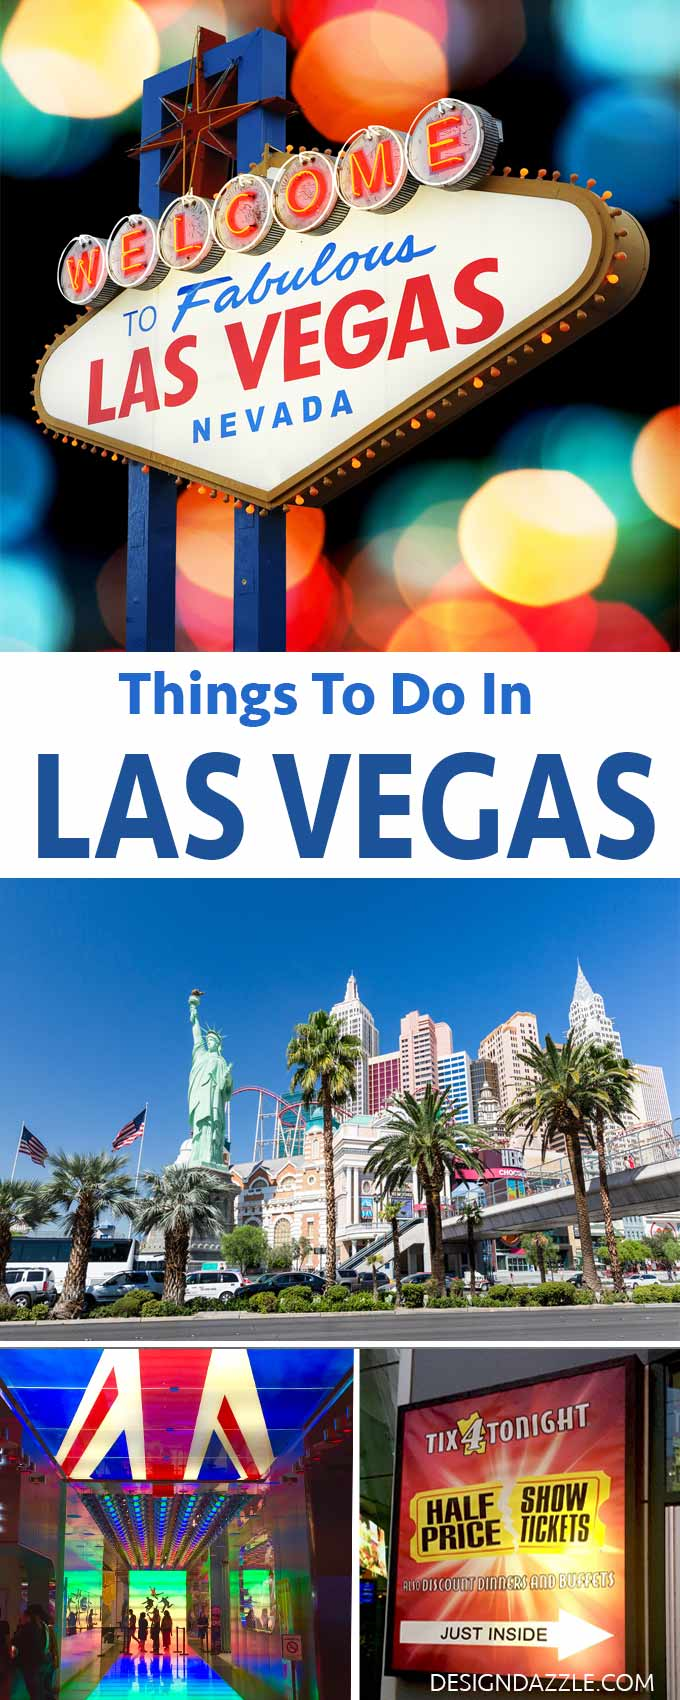 The top favorite things to do while visiting Las Vegas, Learn tips on getting tickets to shows for half price. There are so many fun things to do. | what to do in Las Vegas | Las Vegas travel tips | Las Vegas attractions | Las Vegas travel guide || Design Dazzle